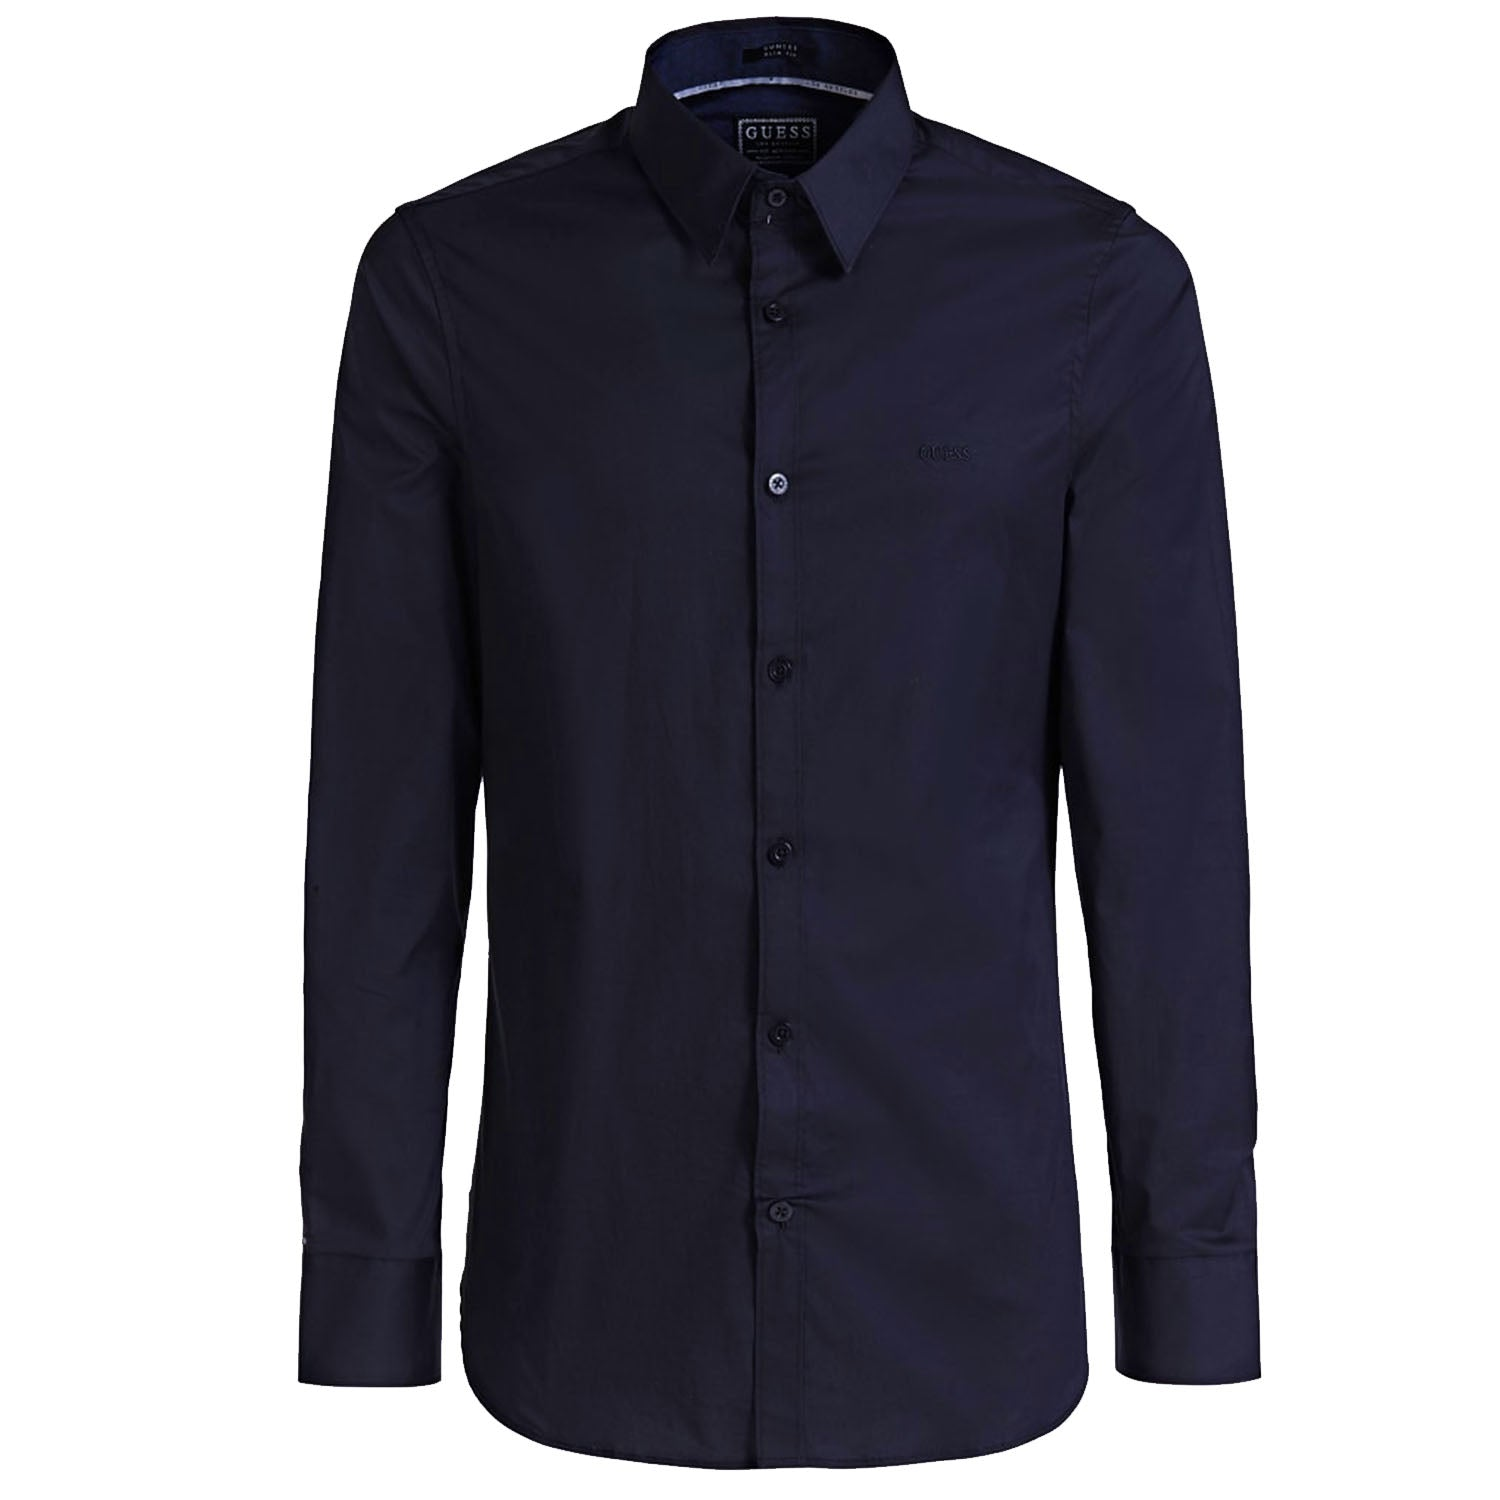 Guess Classic Fine Tailored Slim Fit Shirt